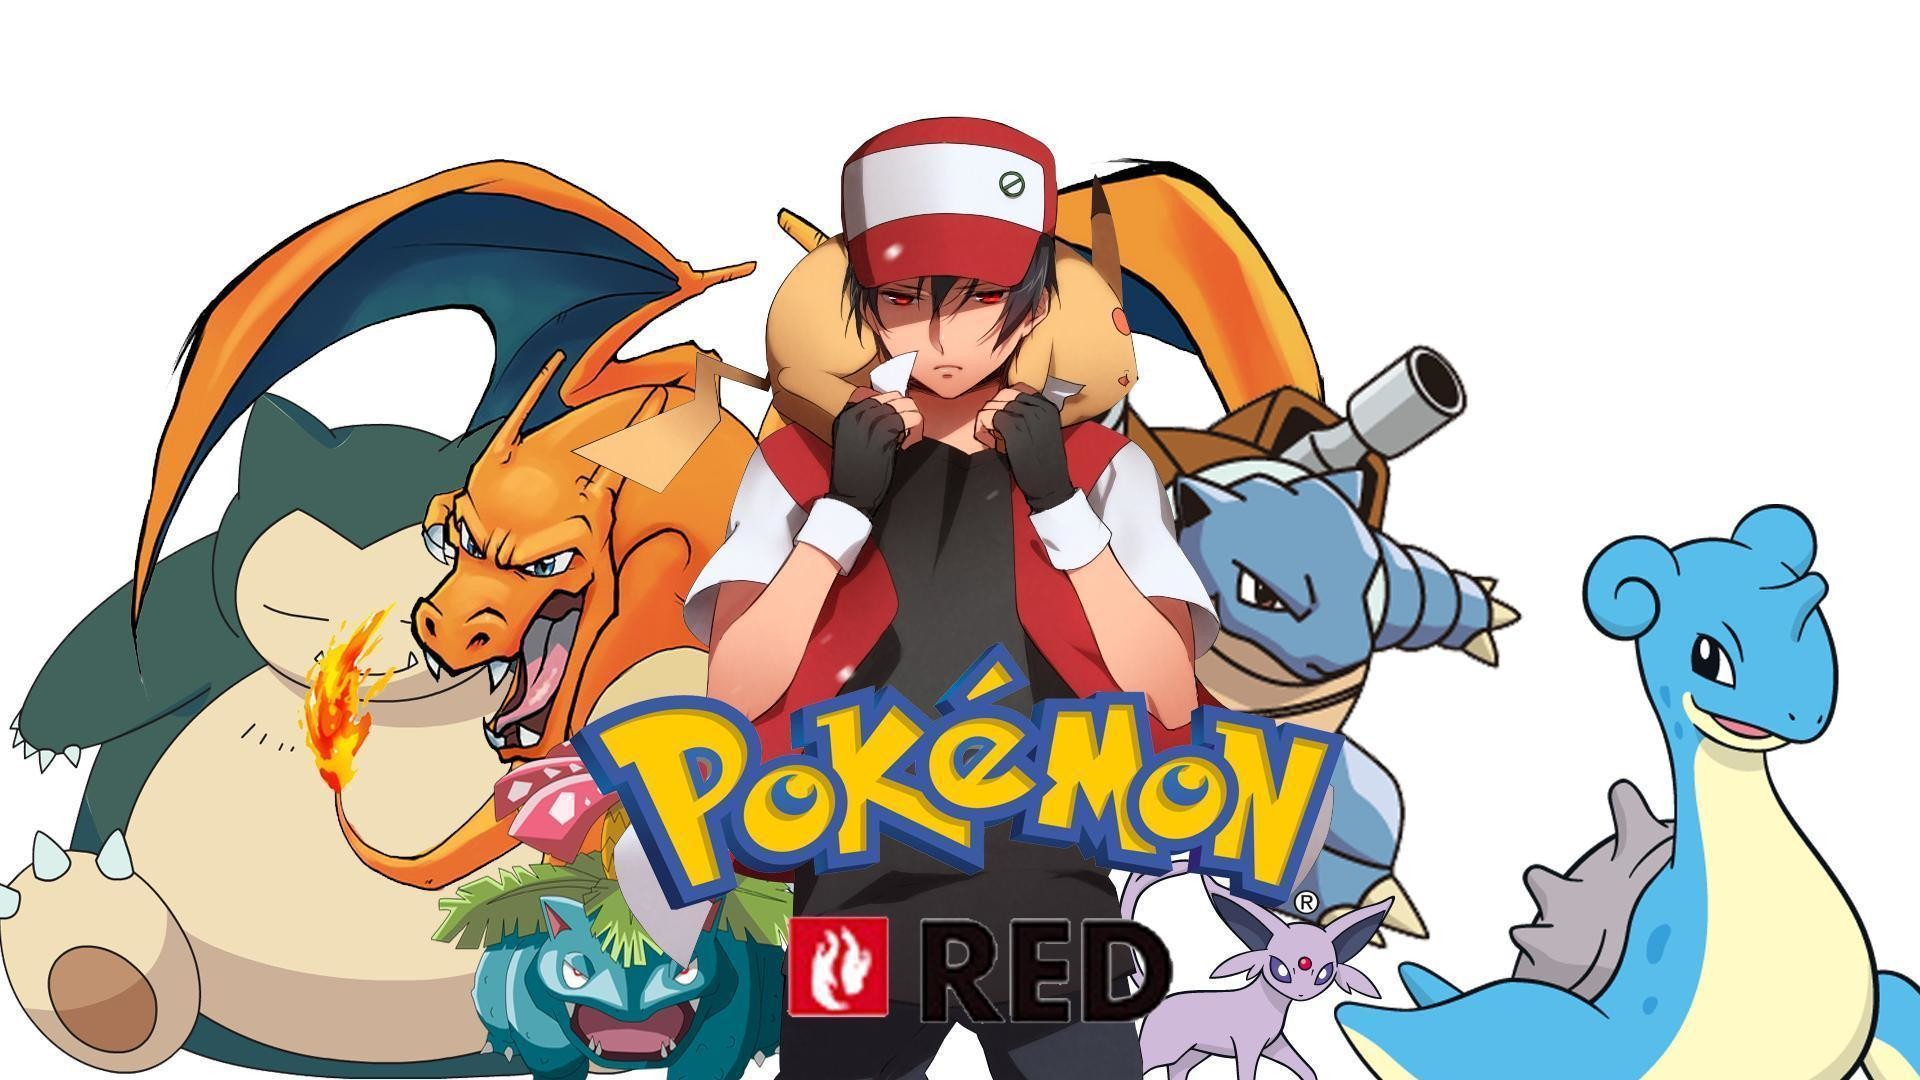 Res: 1920x1080, Pokemon Red Wallpaper by Roxxas21 on DeviantArt